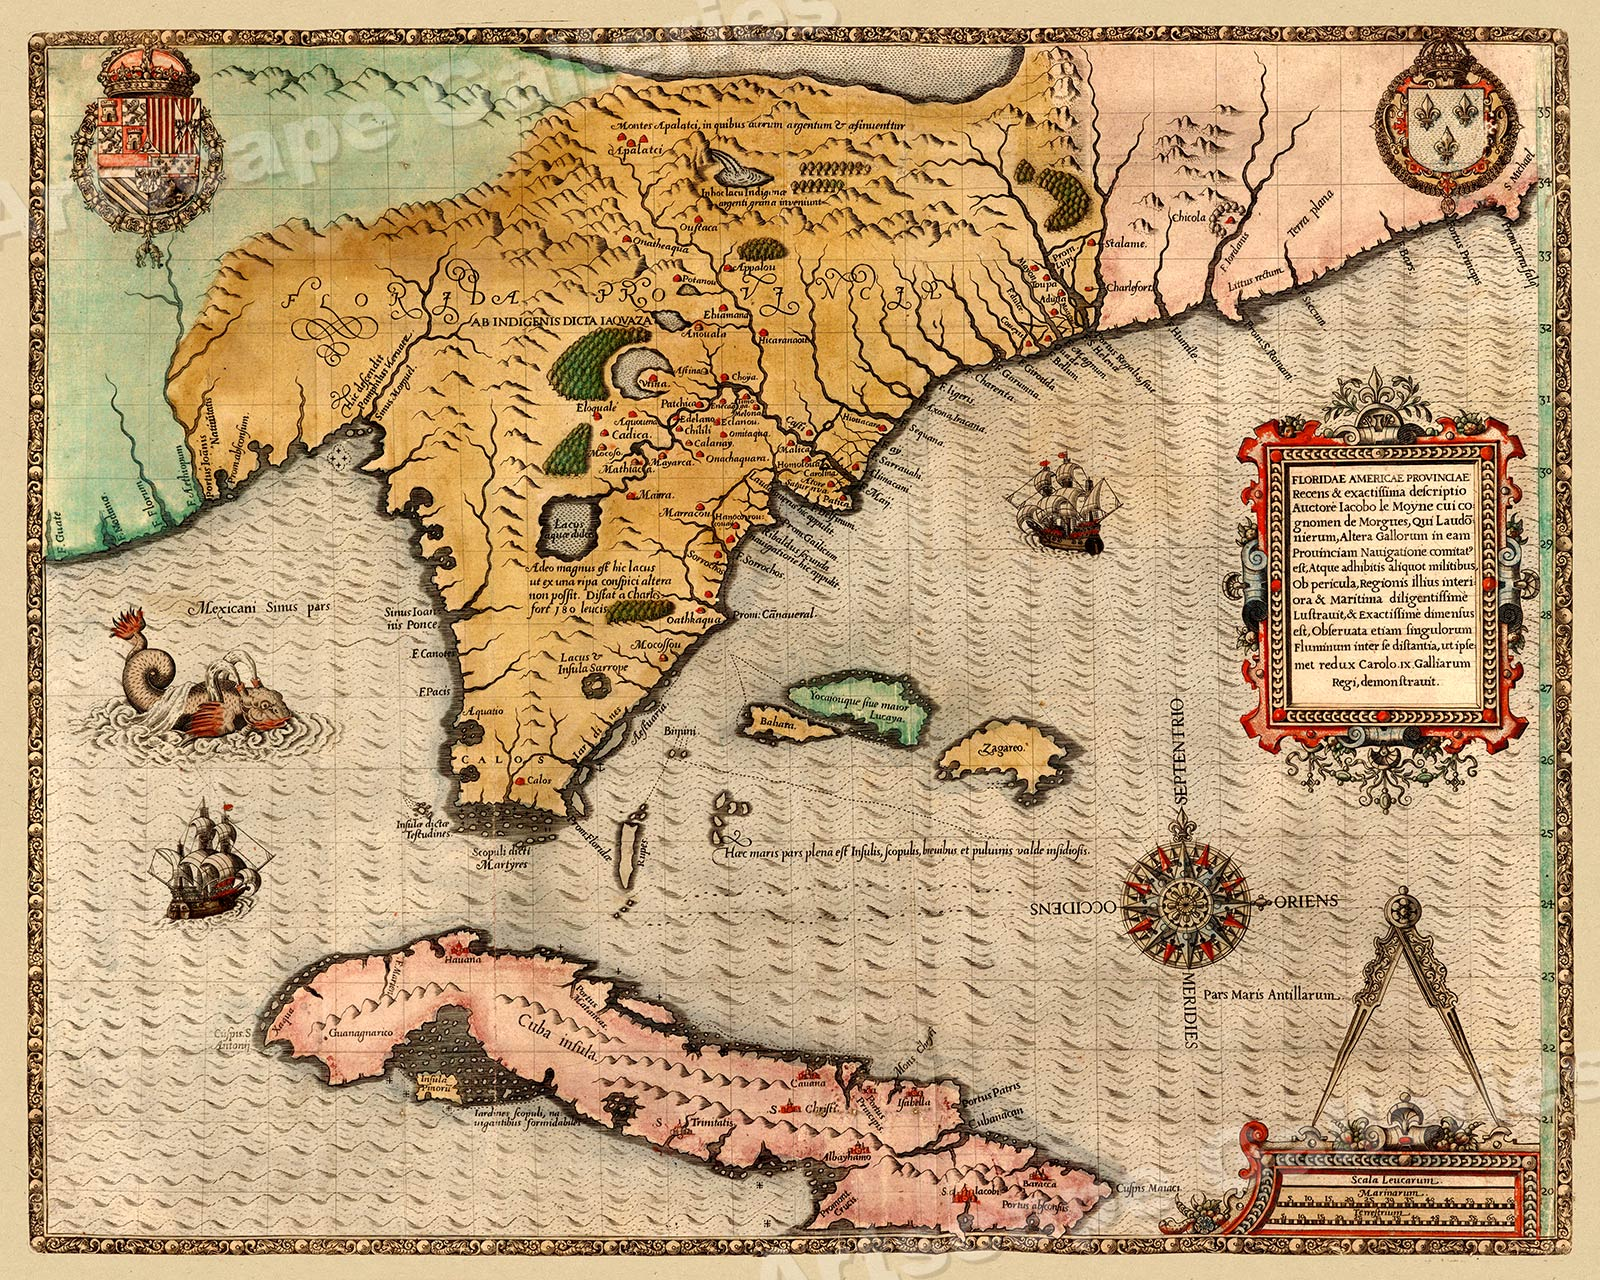 America Map Florida.Details About 1591 Florida Cuba North America Historic Vintage Style Wall Map 24x30